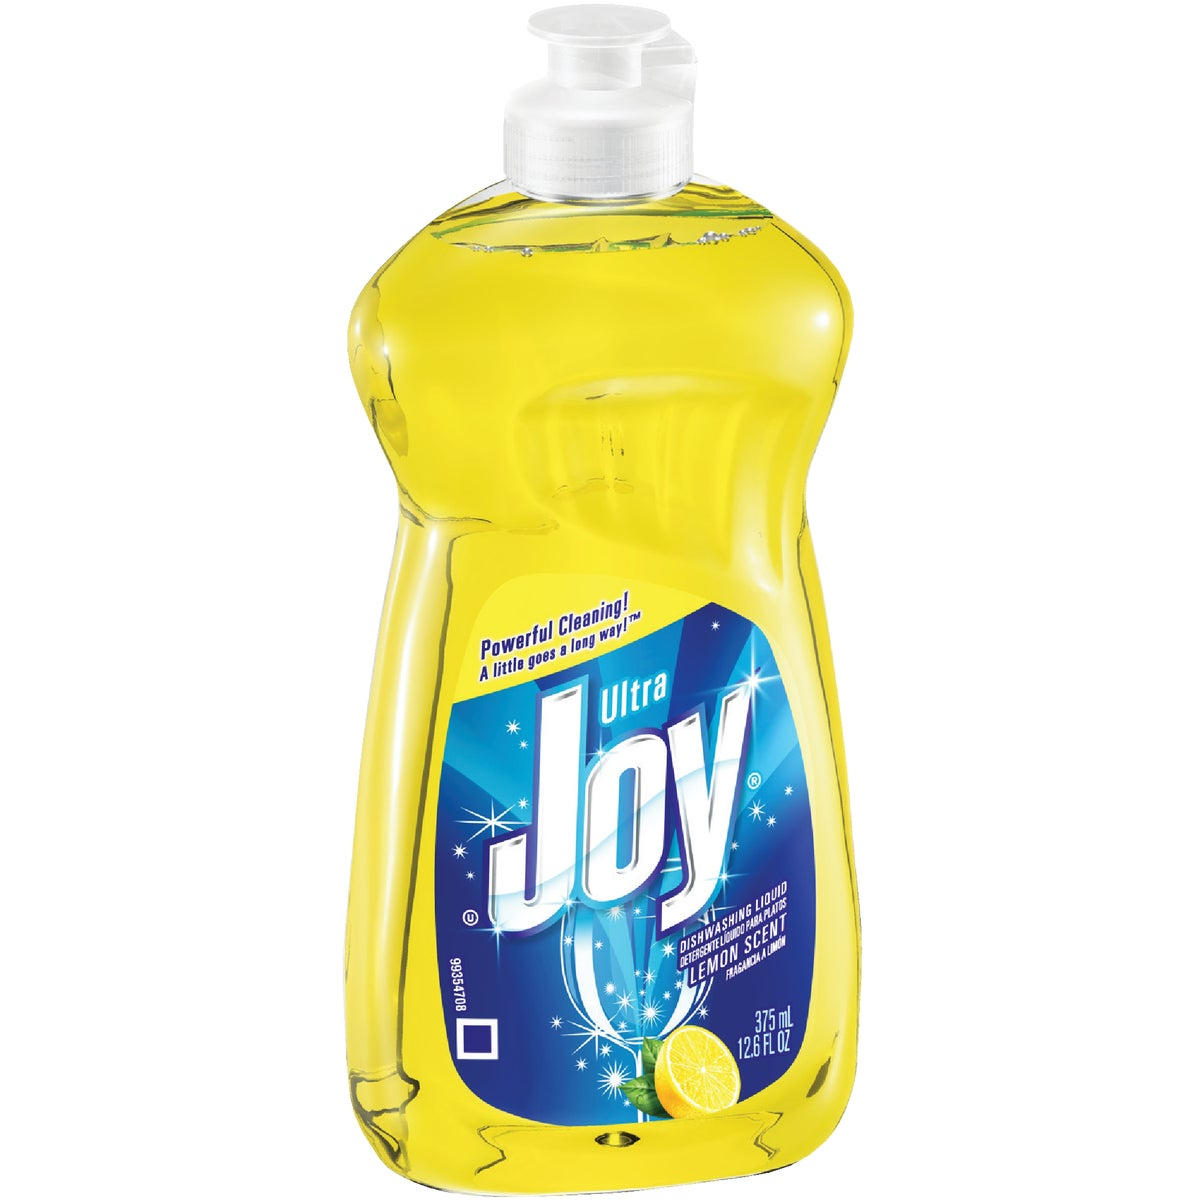 12.6OZ LEM JOY DISH SOAP - 00614 by Procter & Gamble